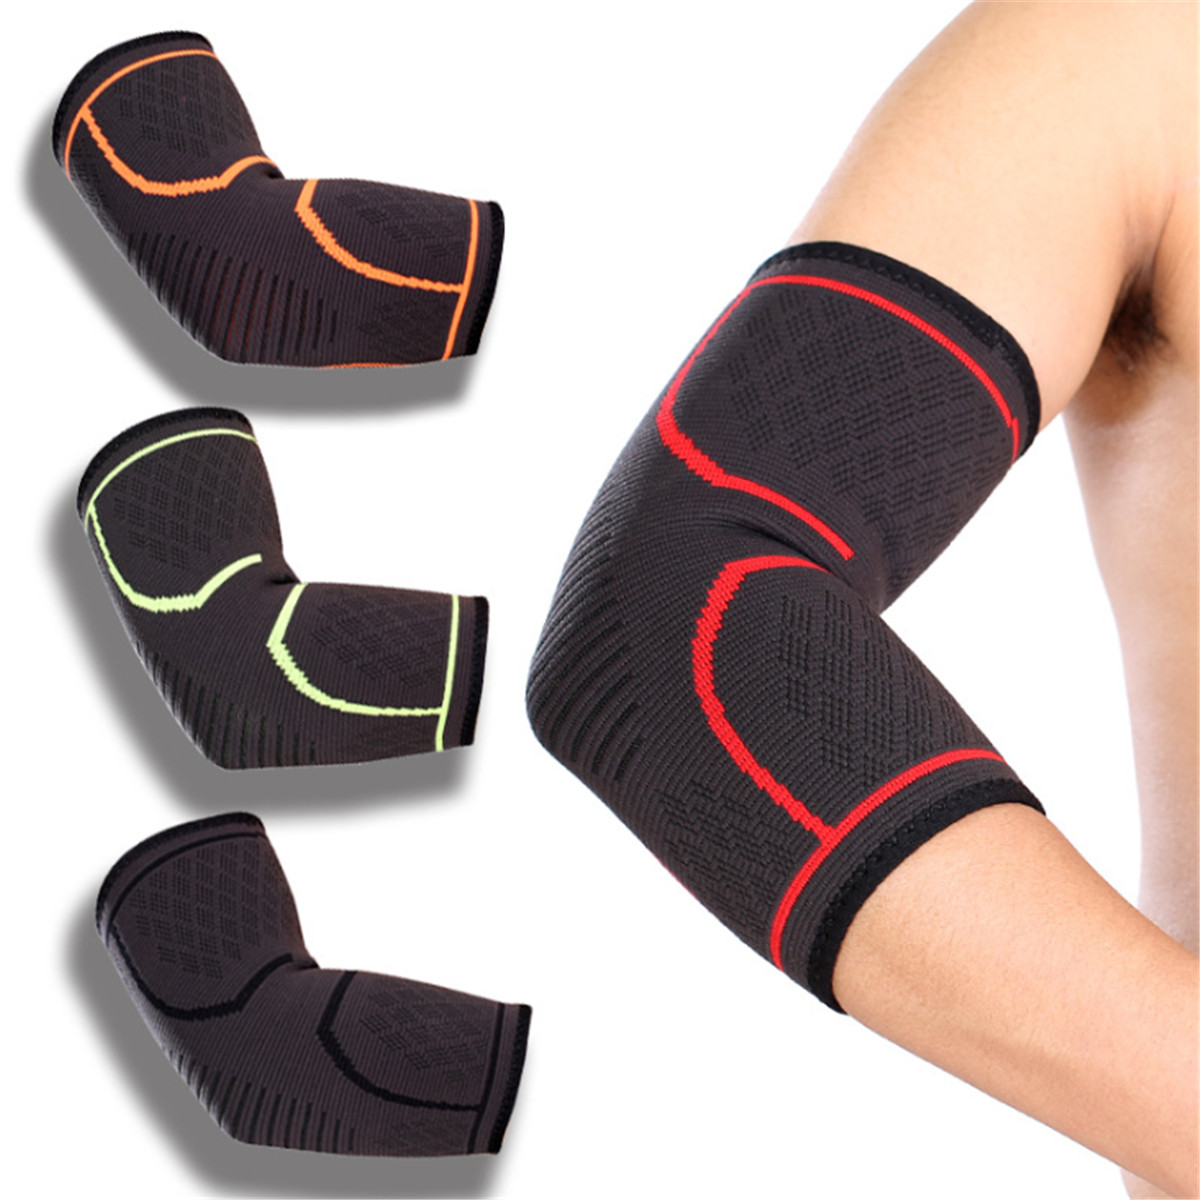 Elbow Support Brace Arthritis Bandage Arm Compression Sleeve .